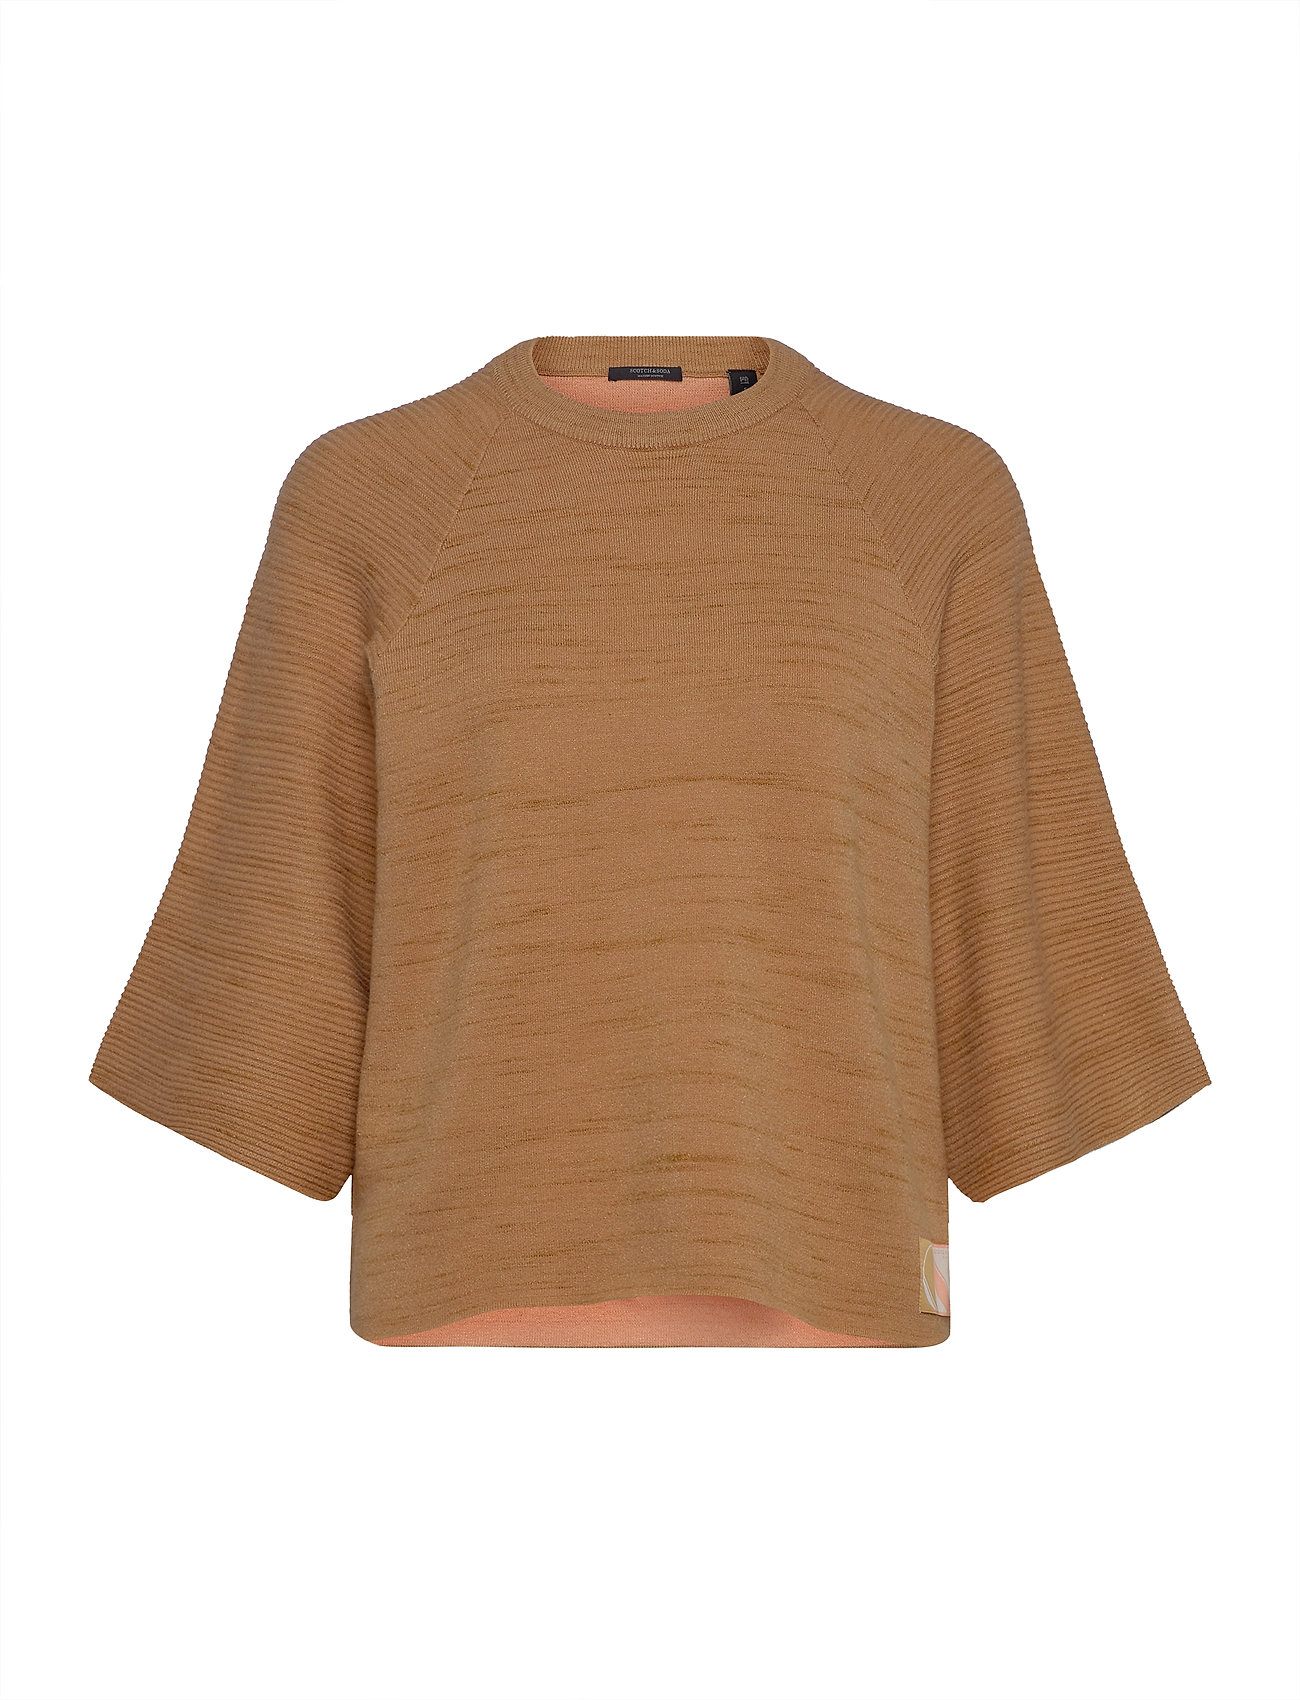 Image of Club Nomade Knitted Pull T-Shirts & Tops Knitted T-Skjorte/tops Beige Scotch & Soda (3423819141)